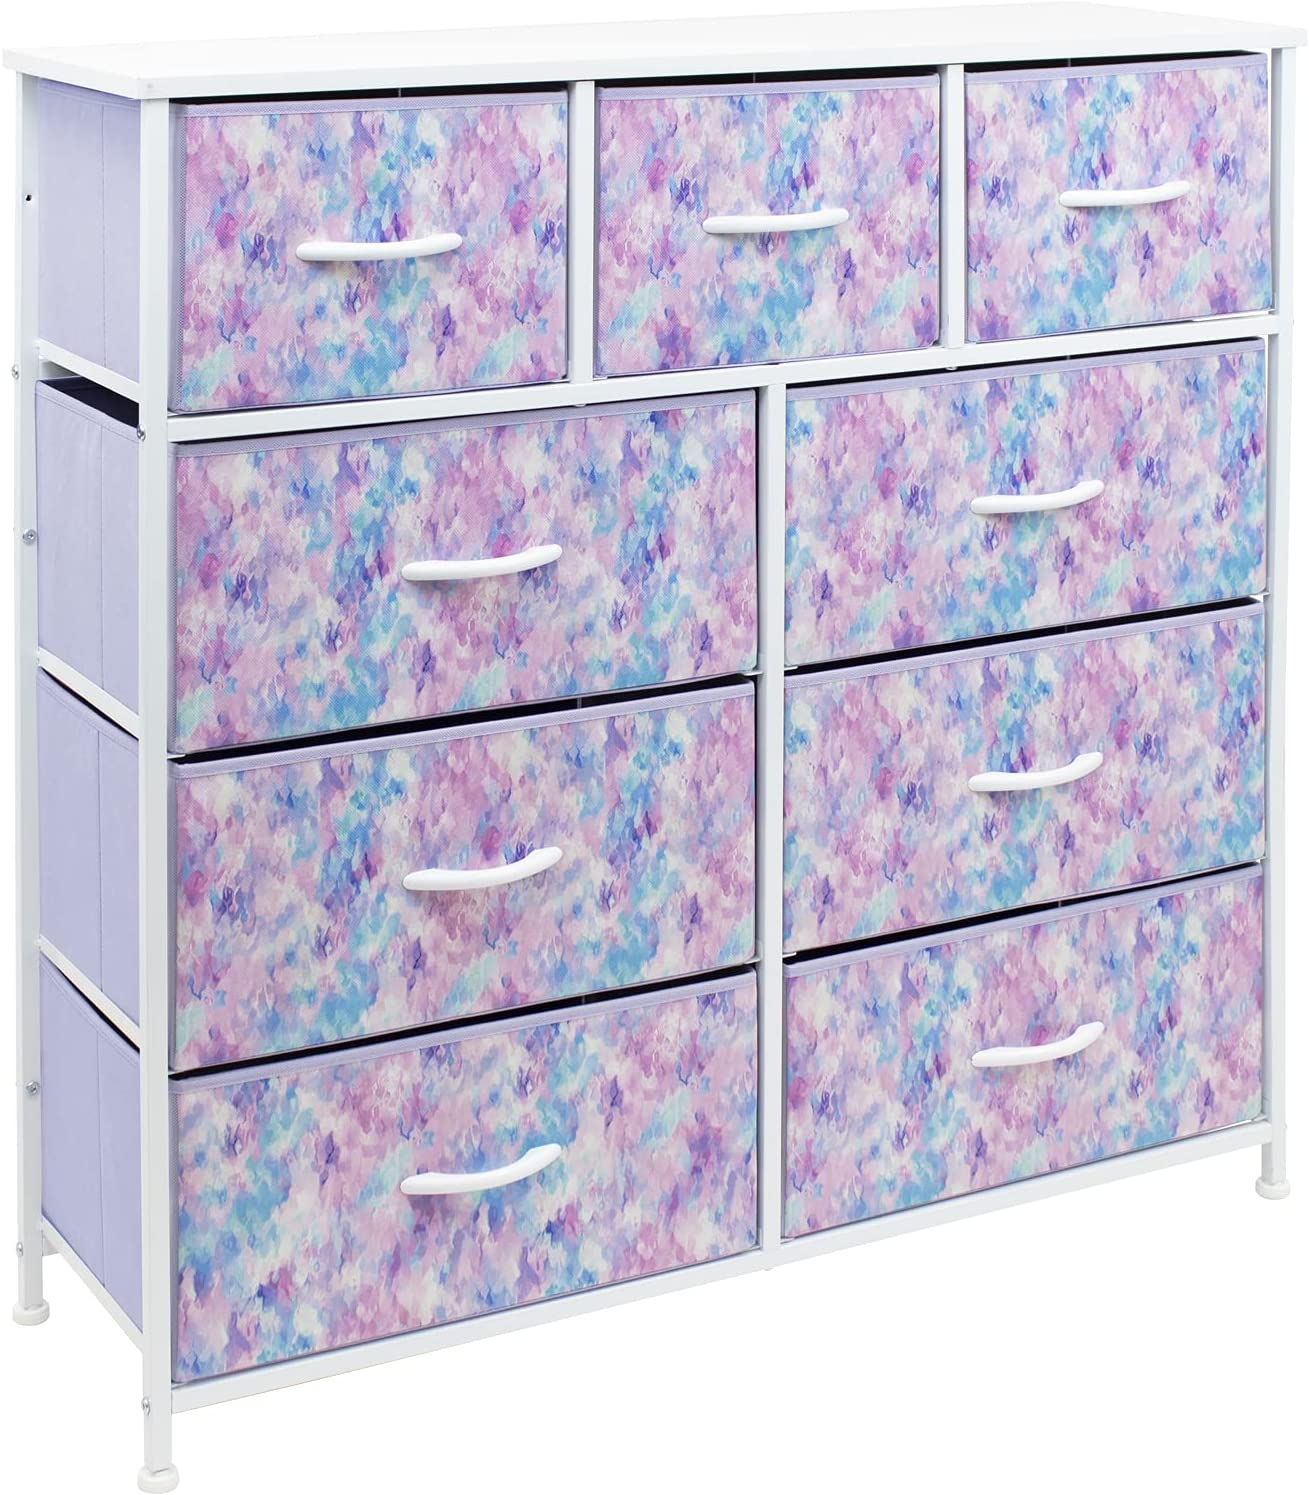 Sorbus Dresser with 9 Drawers - Furniture Storage Chest Tower Unit for Bedroom, Hallway, Closet, Office Organization - Steel Frame, Wood Top, Tie-dye Fabric Bins (9-Drawer, Blue/Pink/Purple)